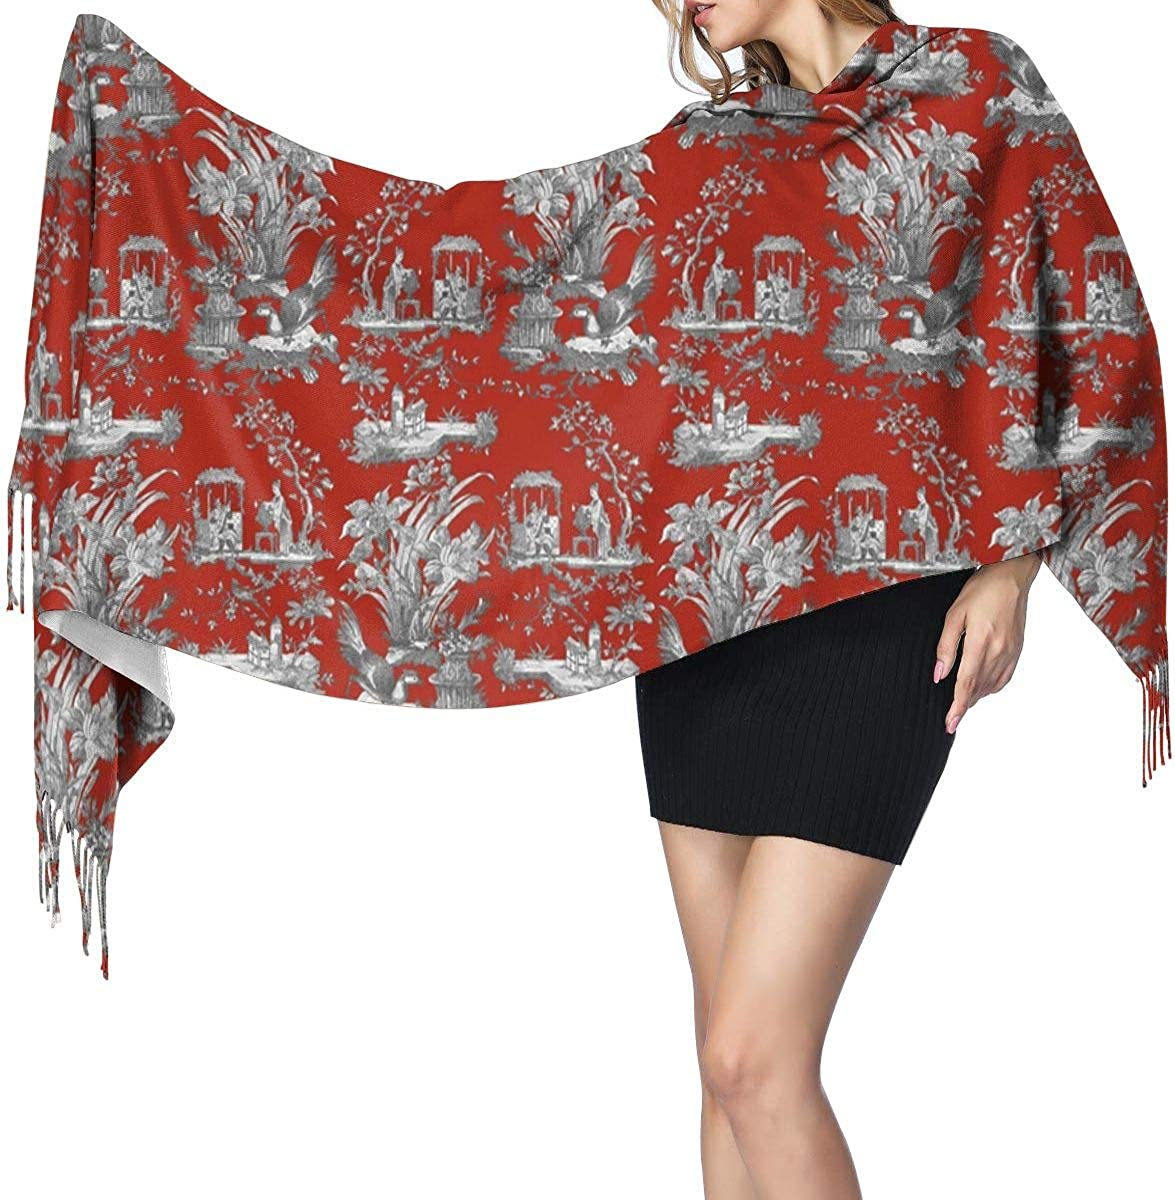 Toile Chinoiserie Turkey Red Women's Winter Warm Scarf Fashion Long Large Soft Cashmere Shawl Wrap Scarves